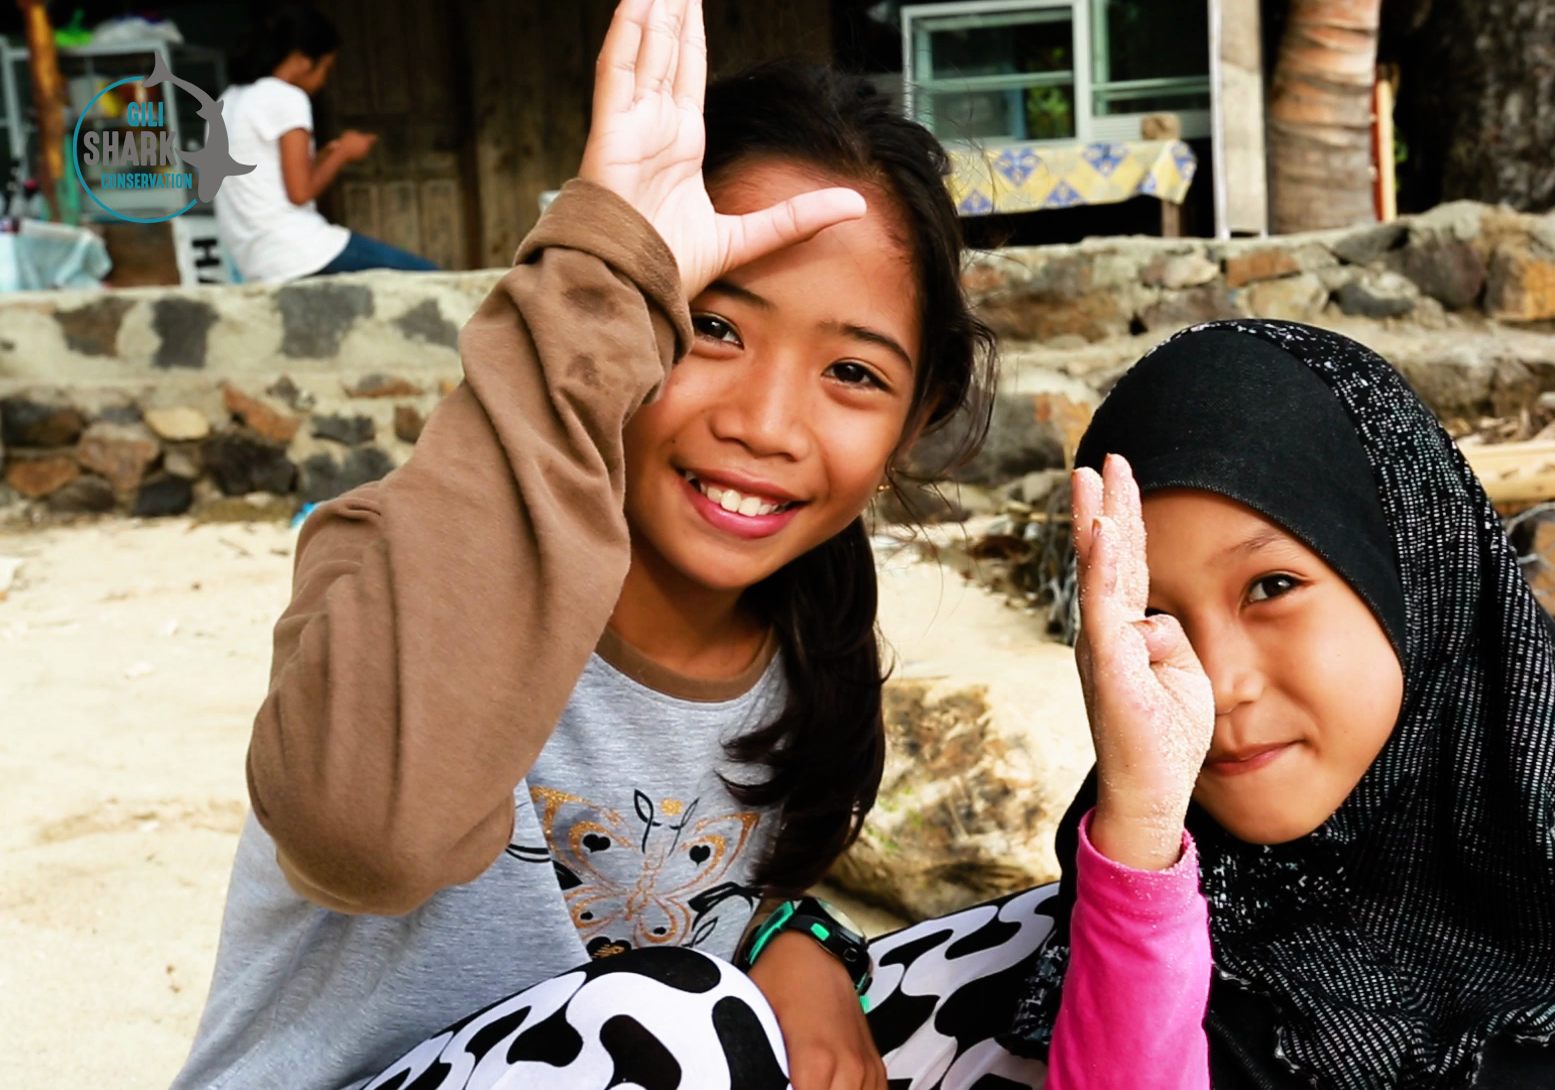 Indonesian kids doing the shark signal